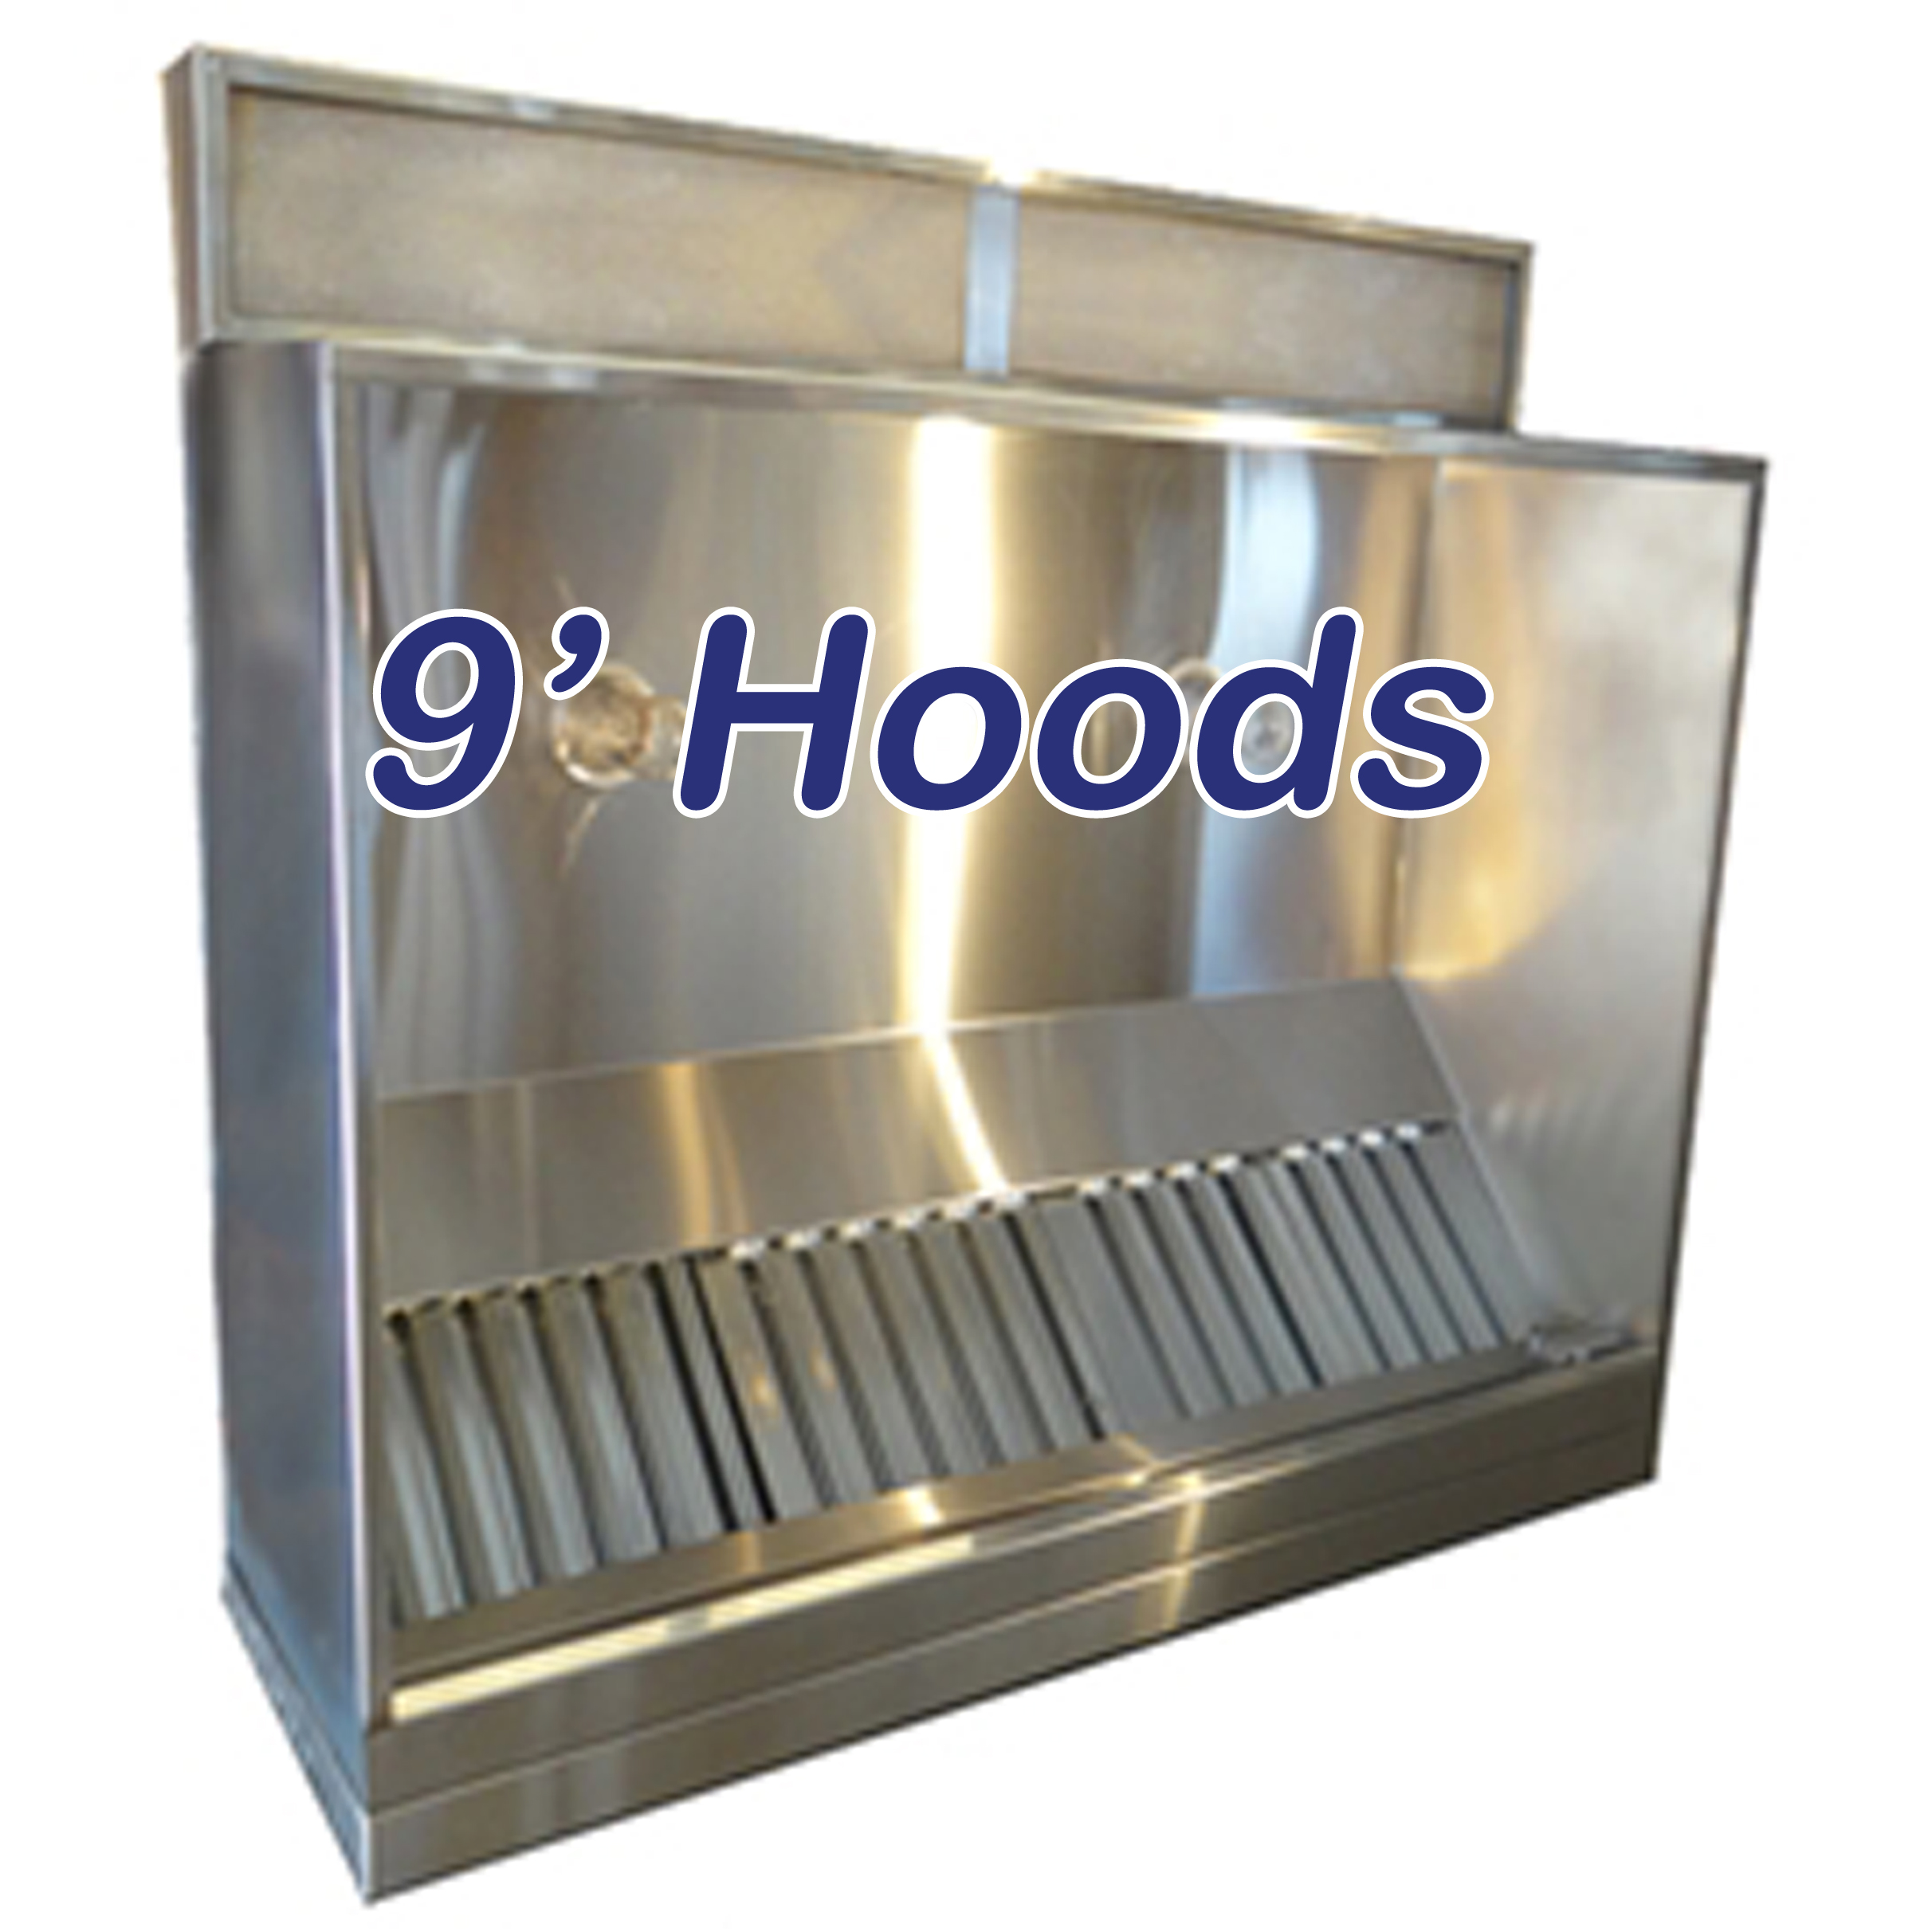 9' vent hoods | vent hoods canopy, shallow front and